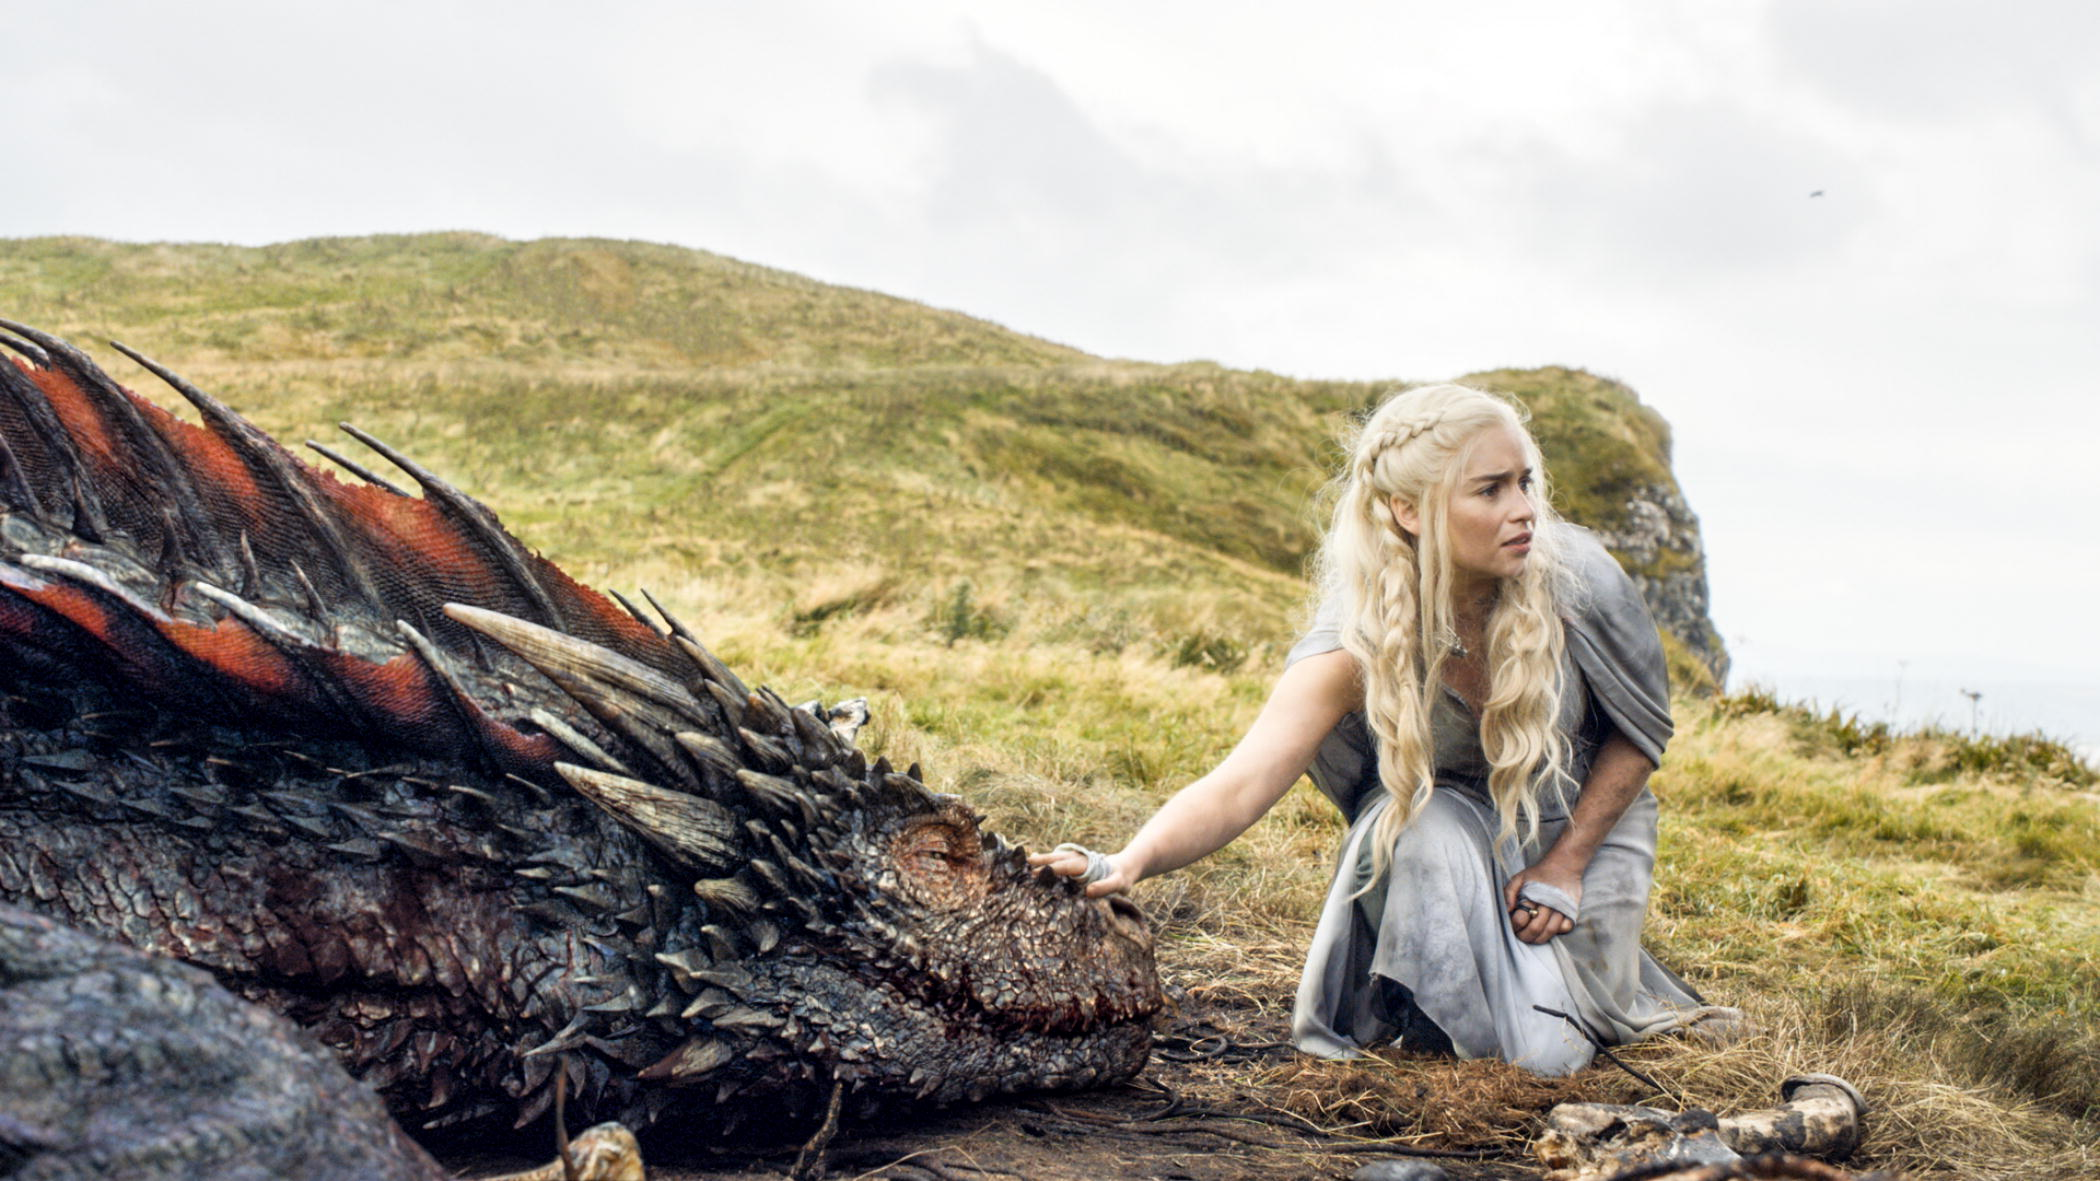 Game of thrones daenerys wallpaper